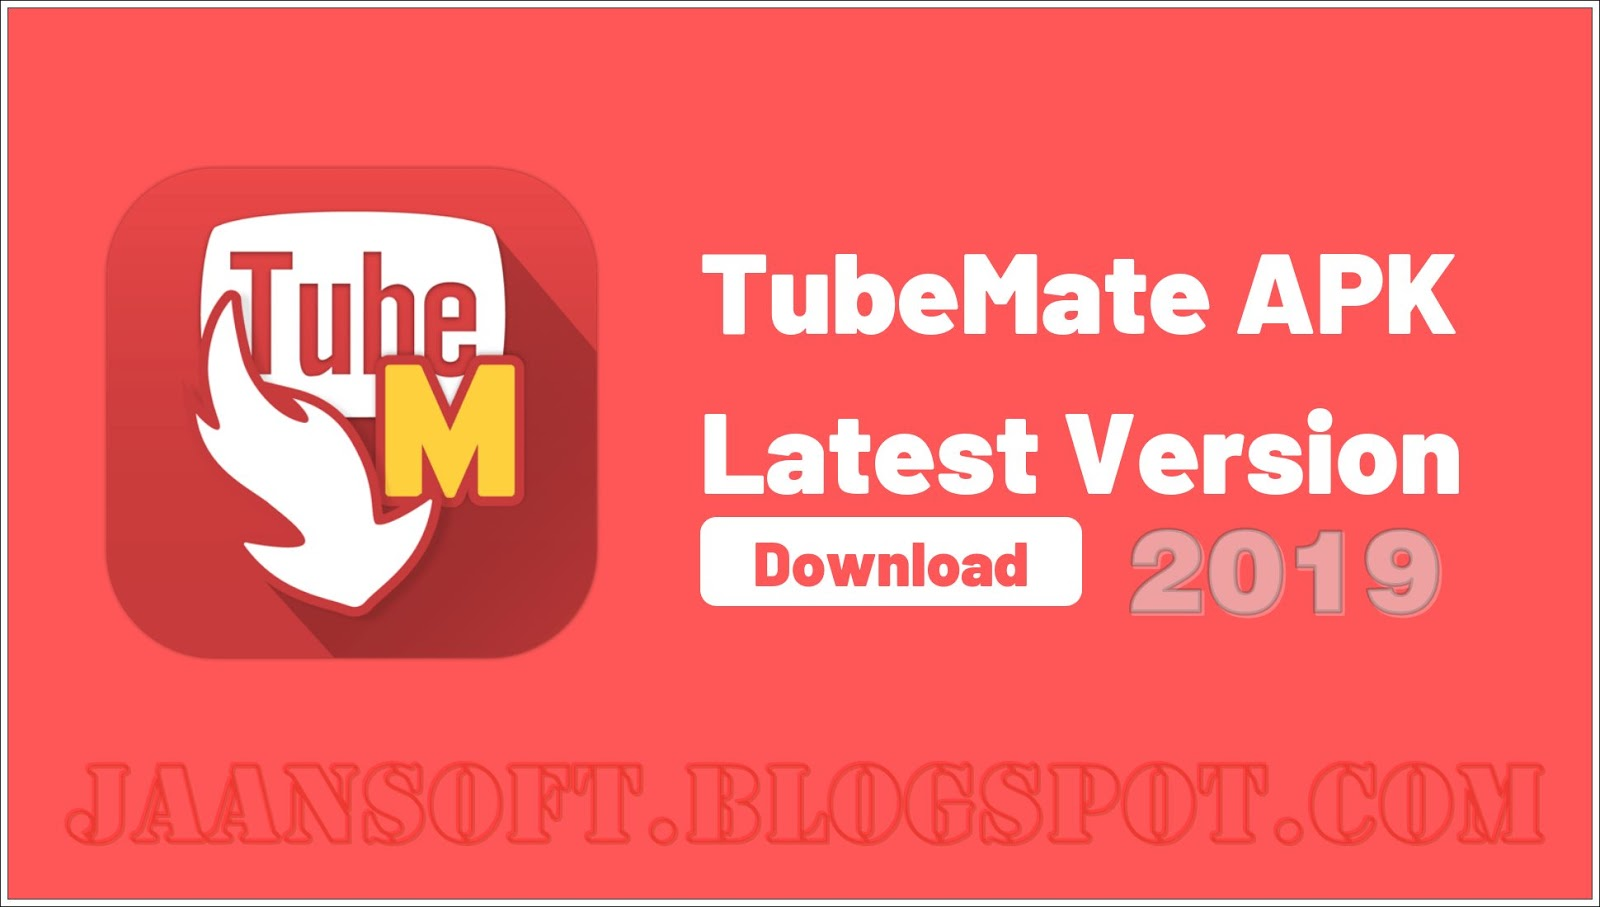 TubeMate YouTube Downloader 2 4 10 Latest Version 2019